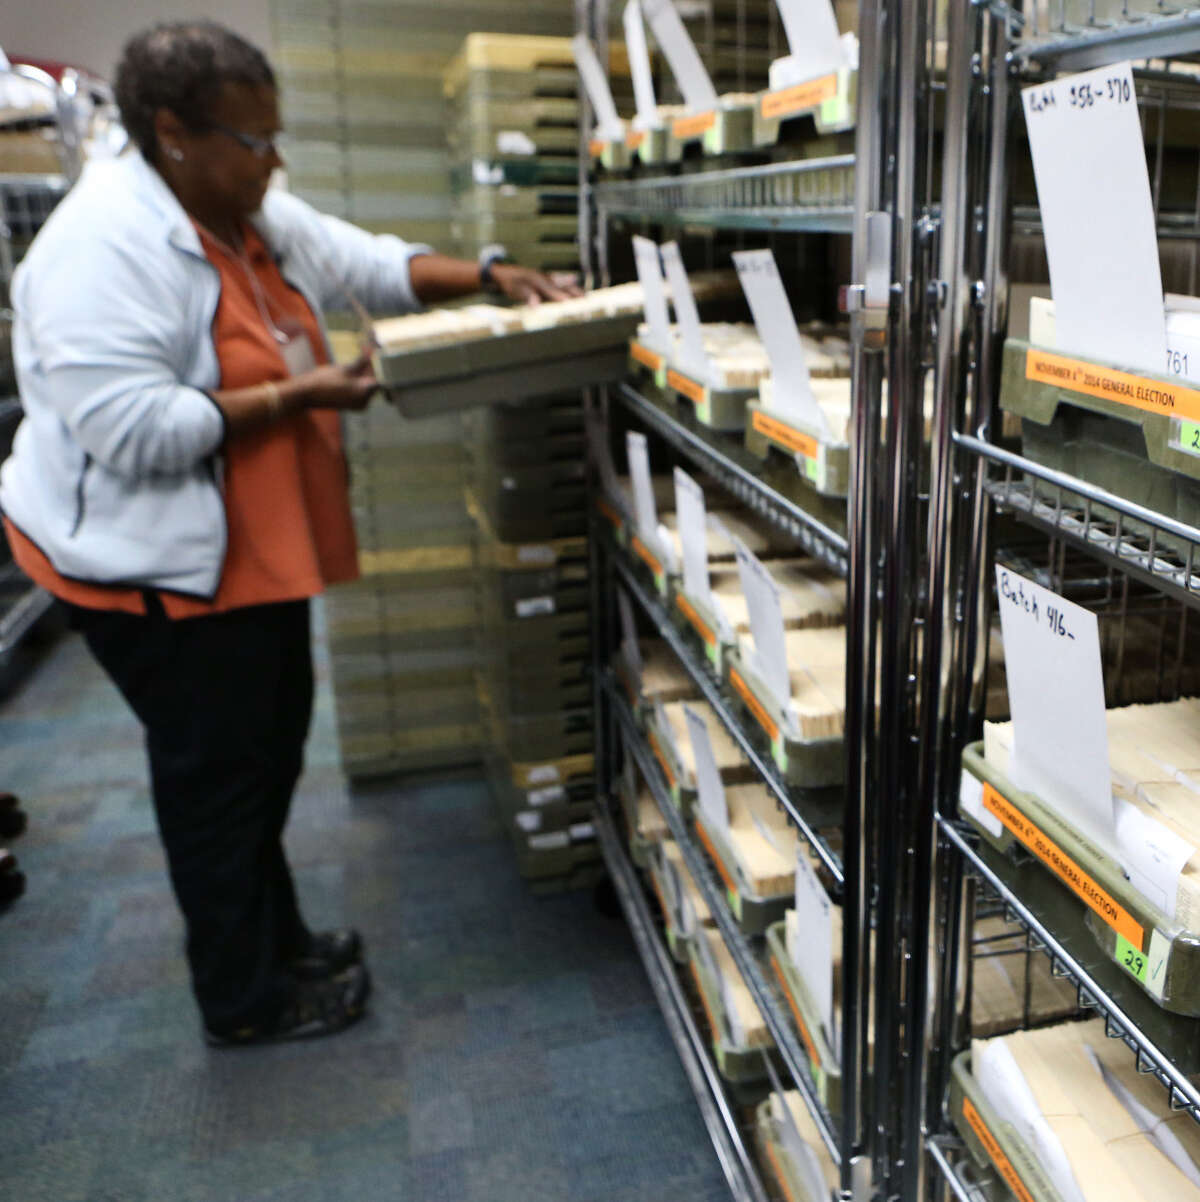 Elections worker Elizabeth Keith goes through a batch of mailed-in ballots.